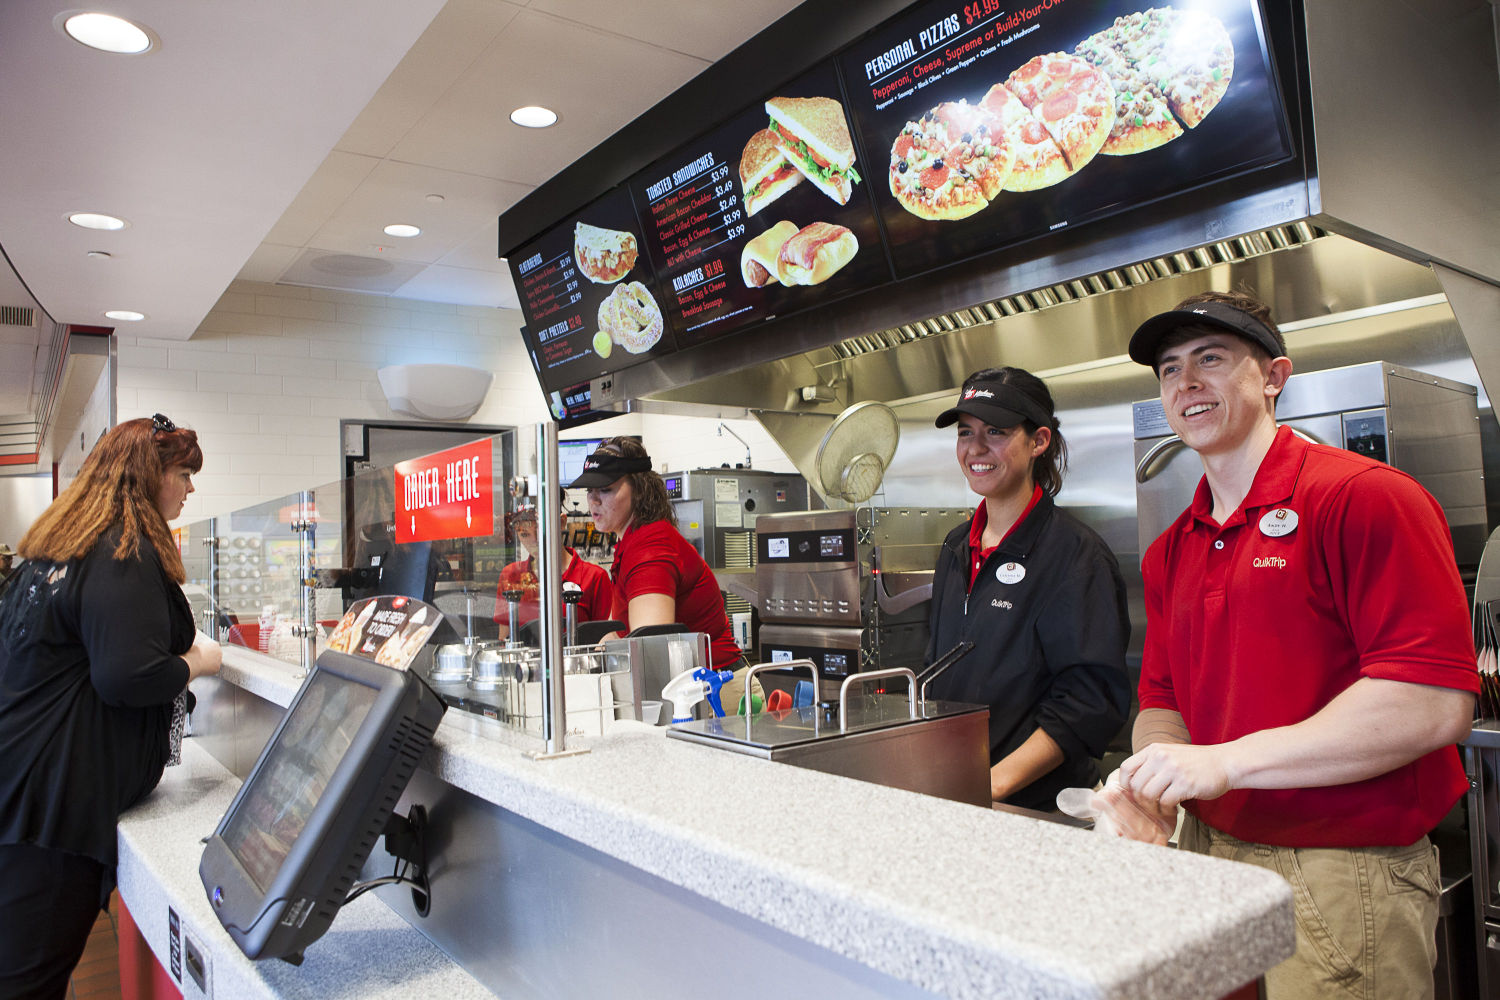 qt kitchen jobs - Qt Kitchen Hours